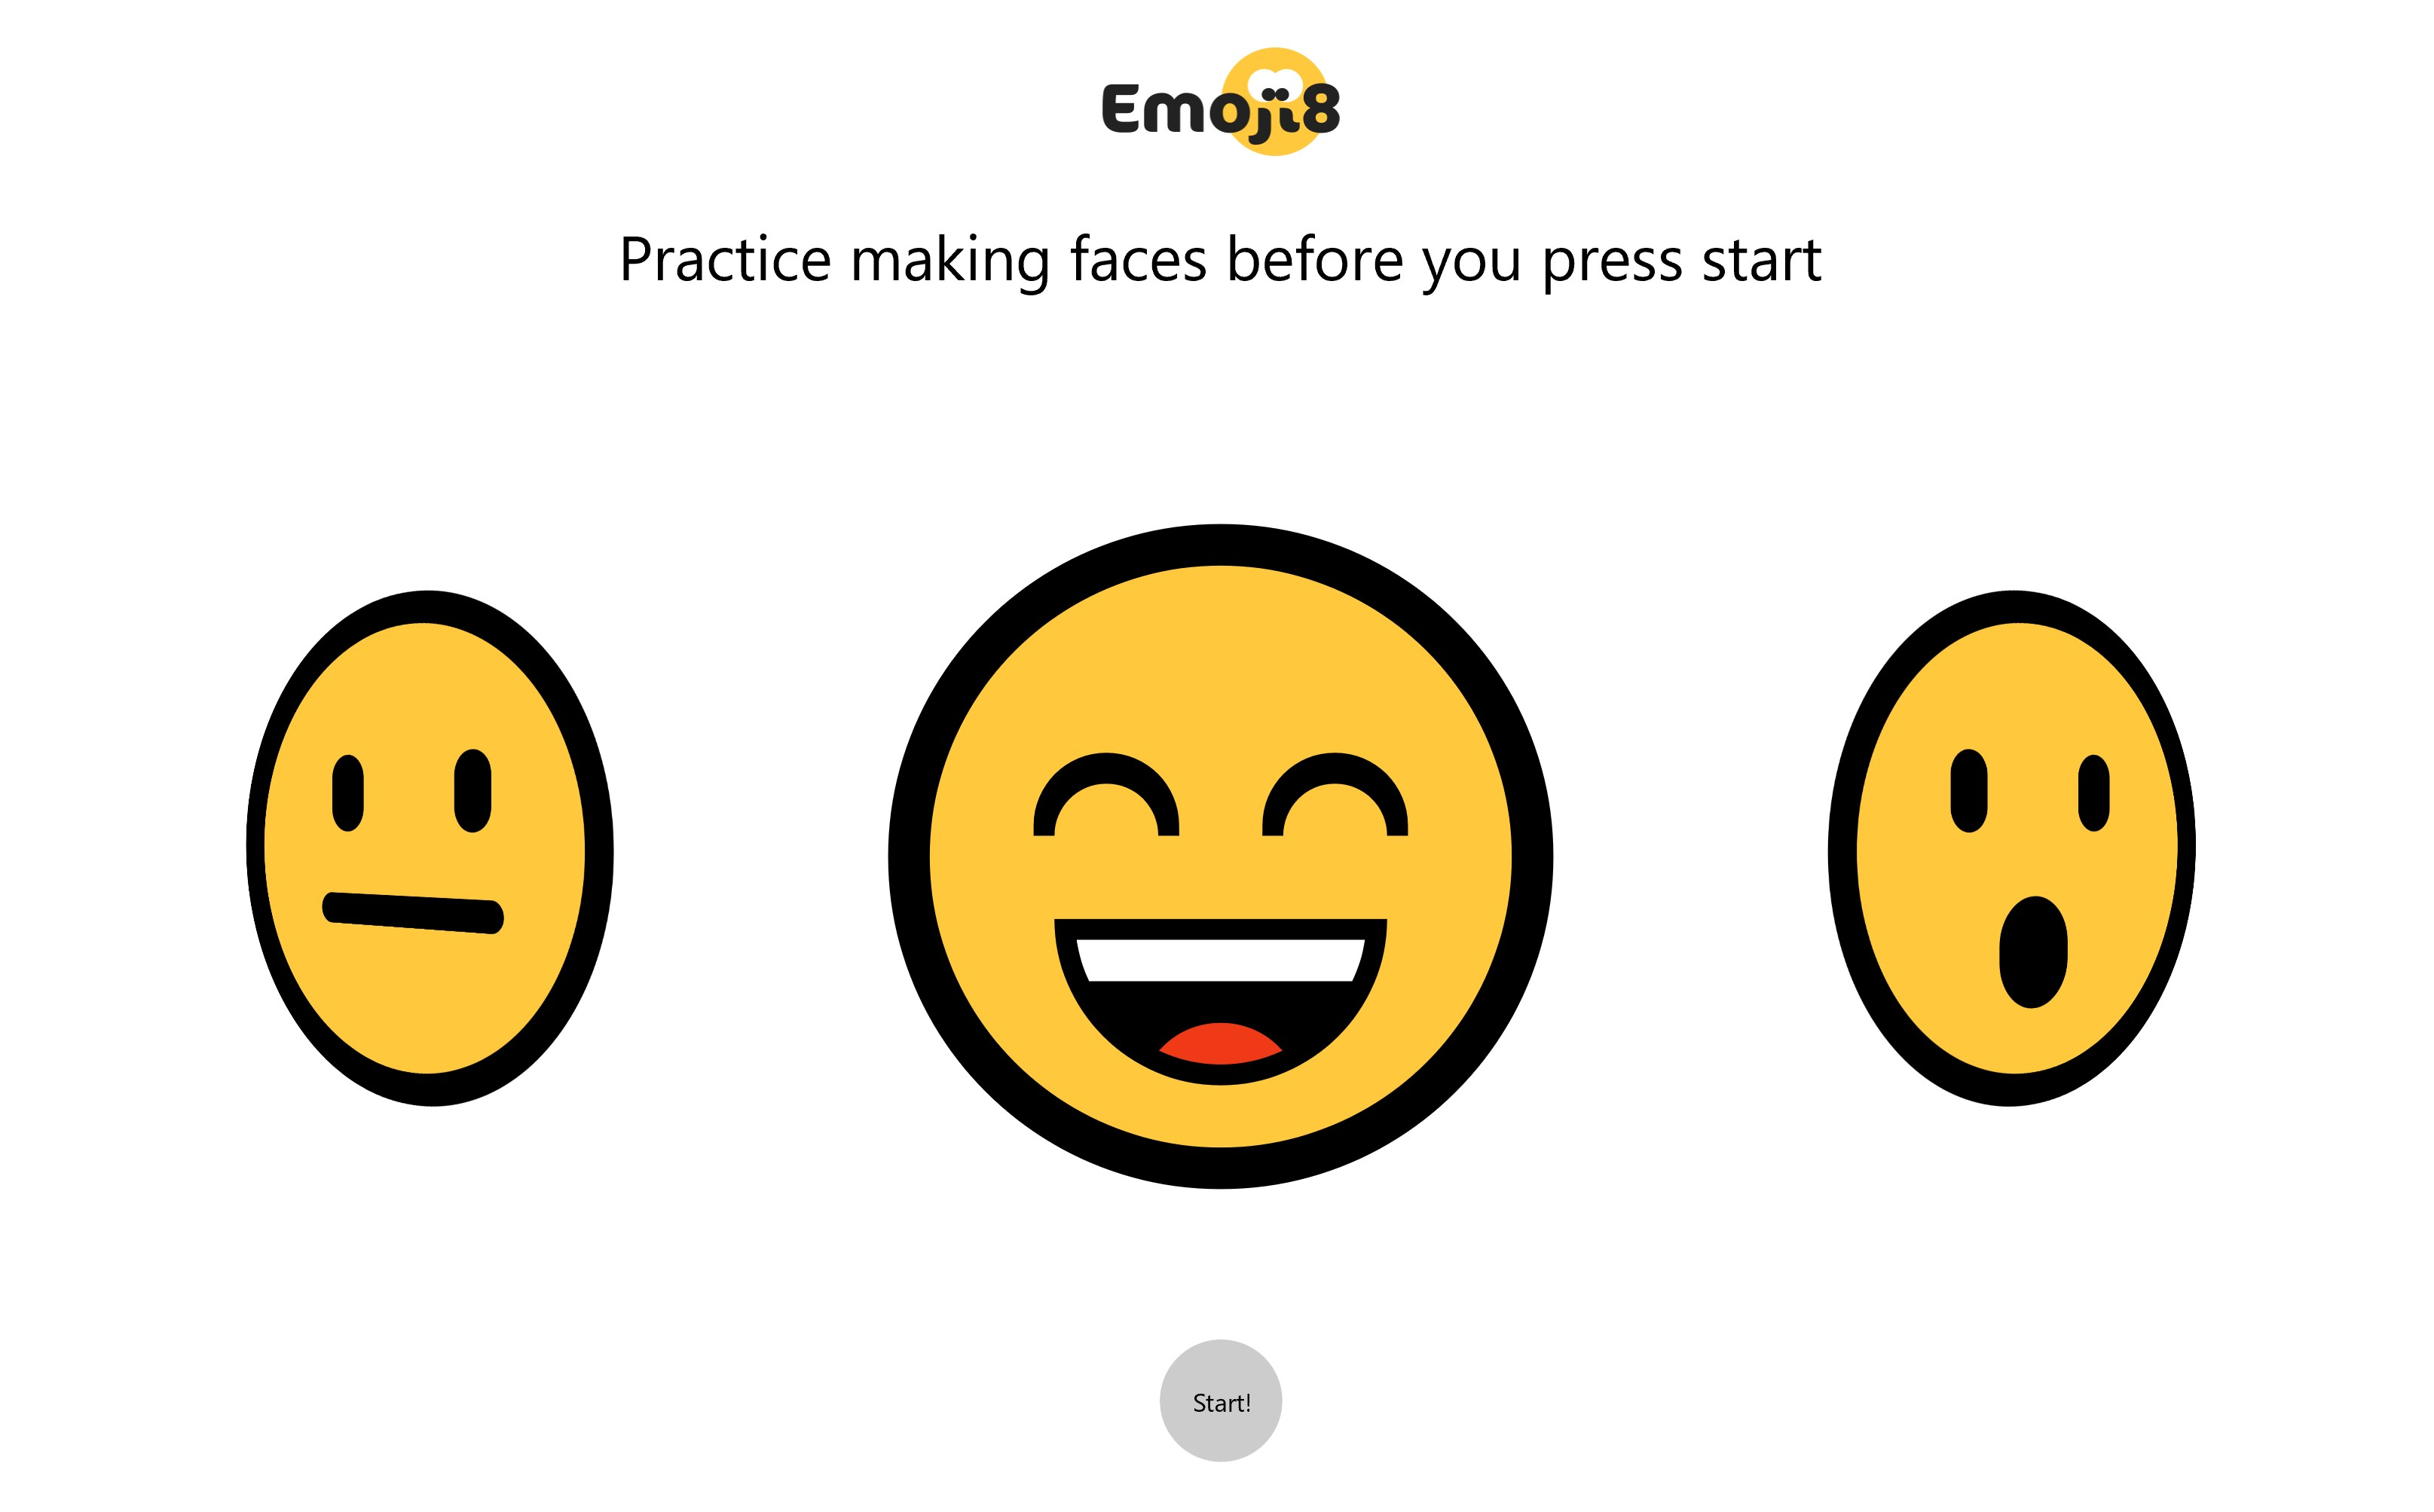 Microsoft's Emoji8 app uses Machine Learning to test your facial expression skillz 1